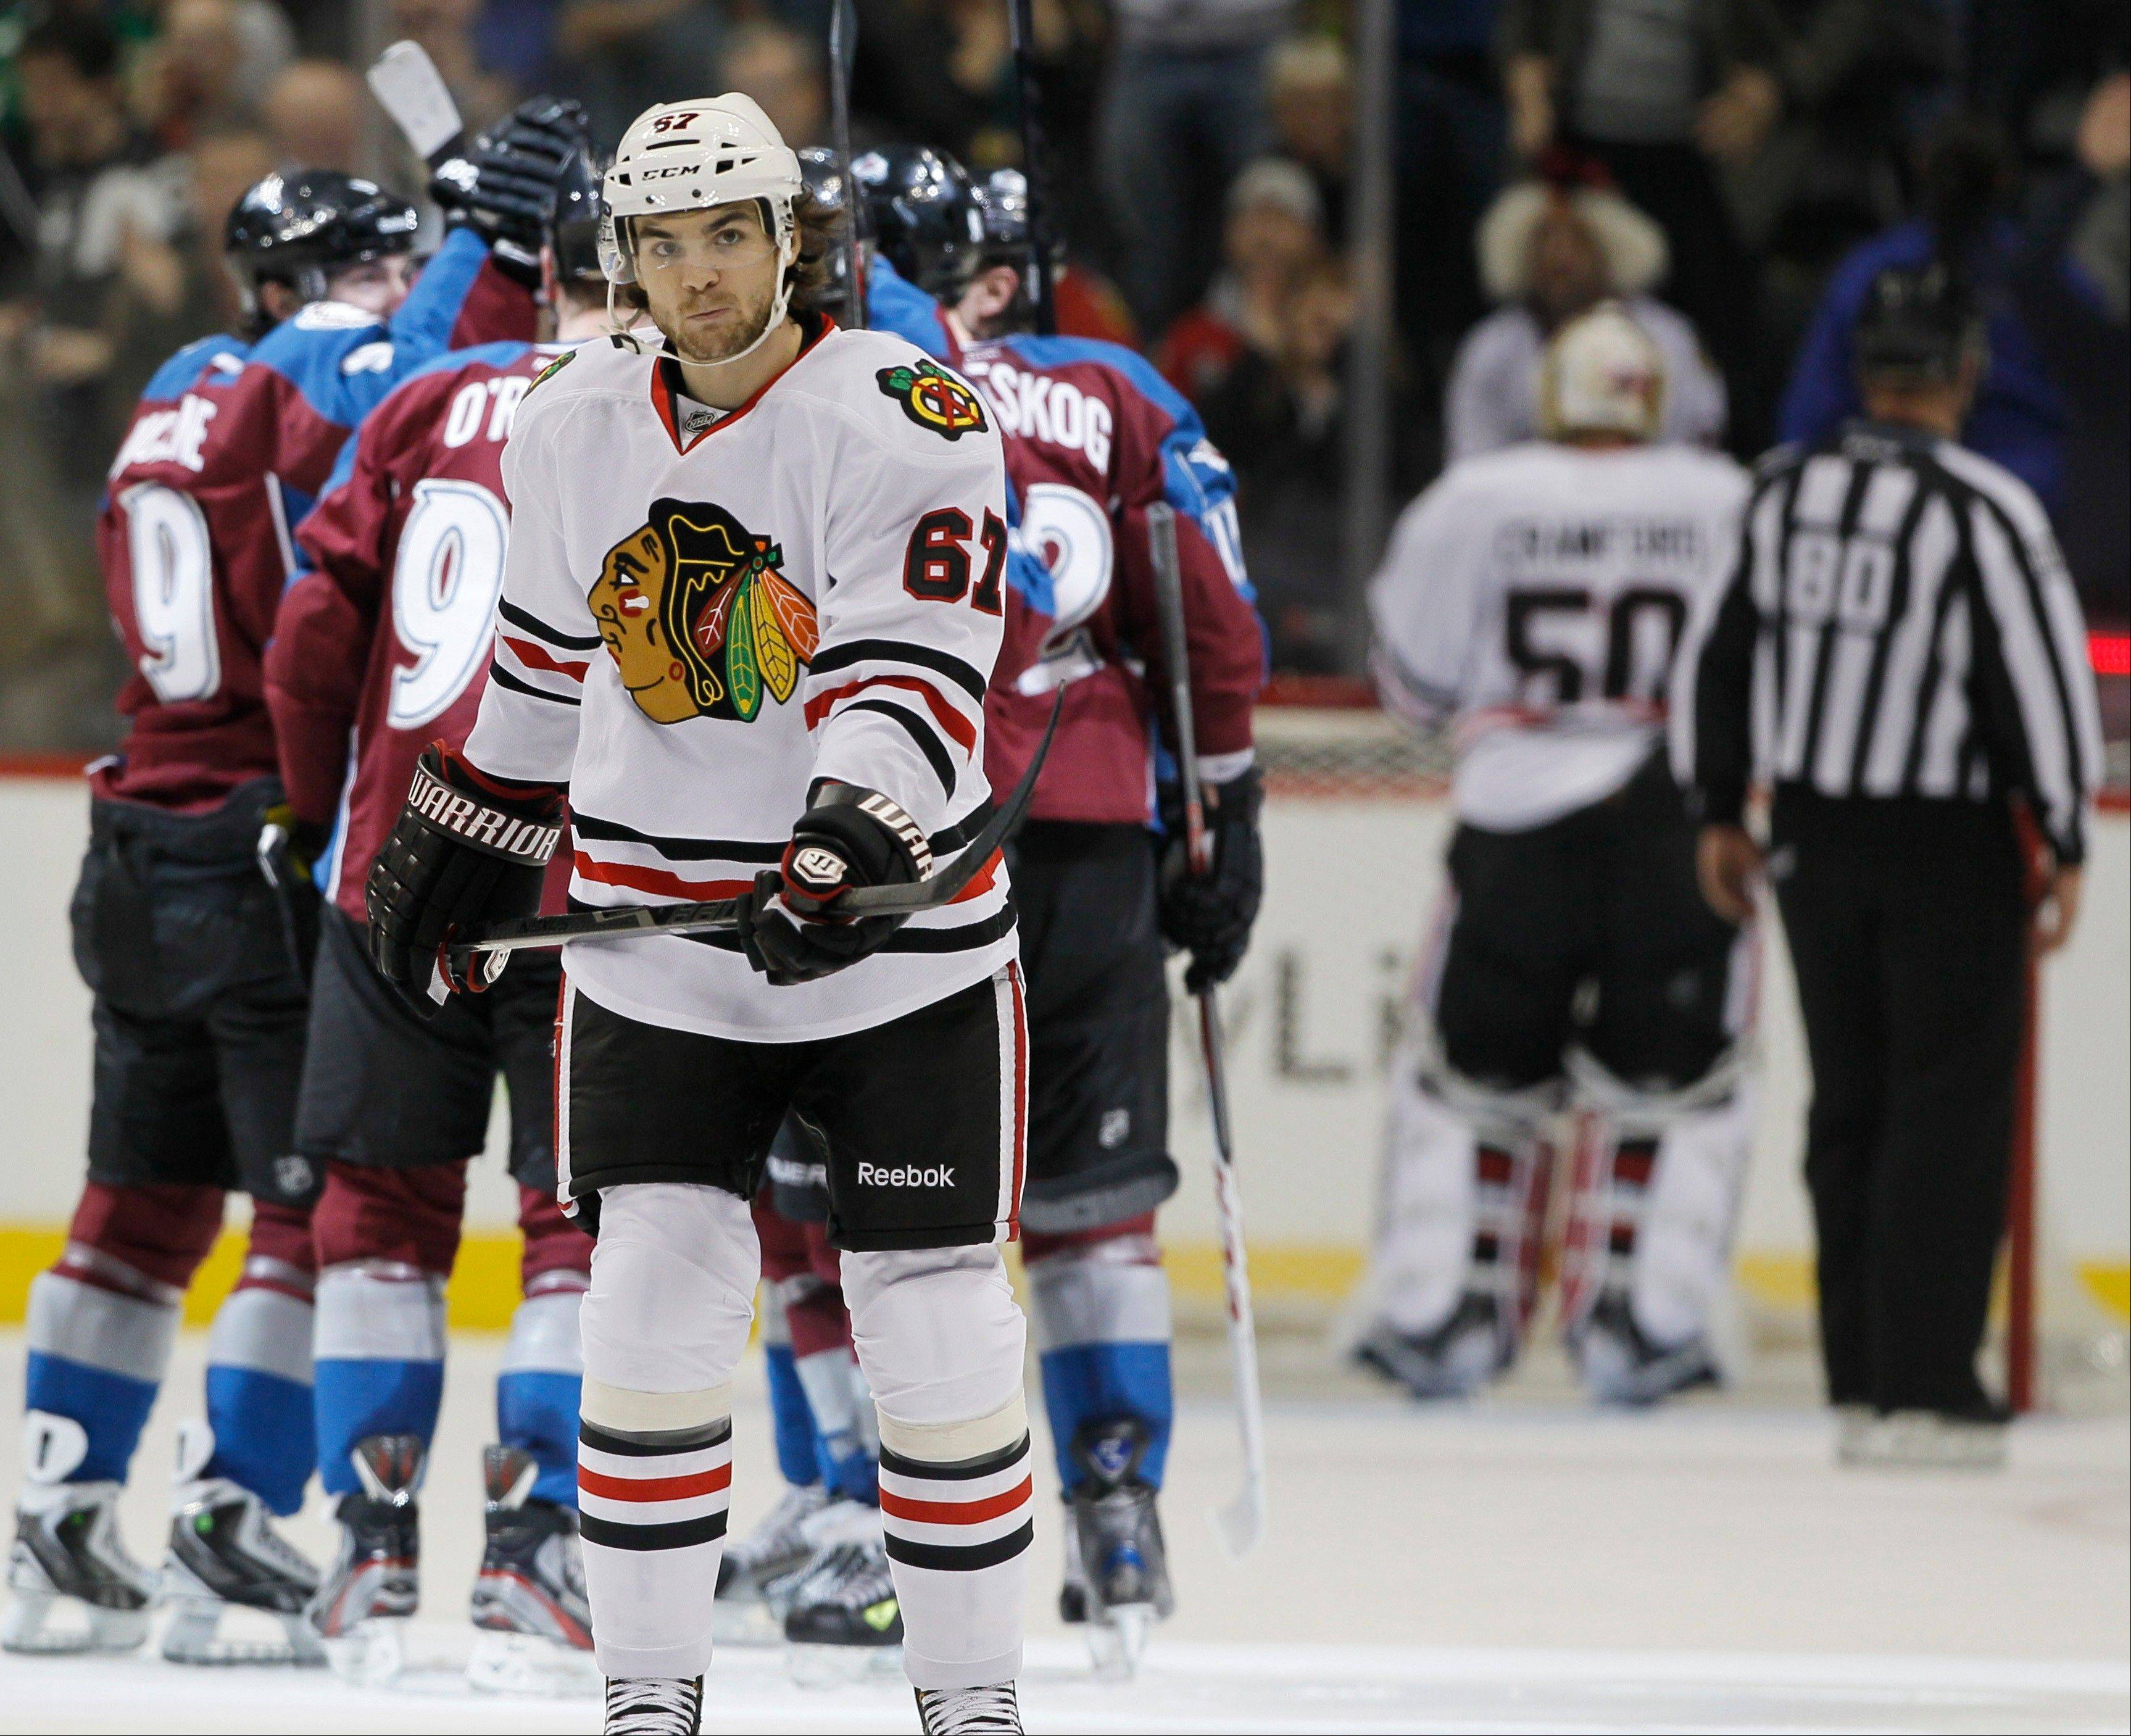 As members of the Colorado Avalanche, back, celebrate a goal by Ryan O�Reilly, Chicago Blackhawks right wing Michael Frolik skates back to the bench in the second period .